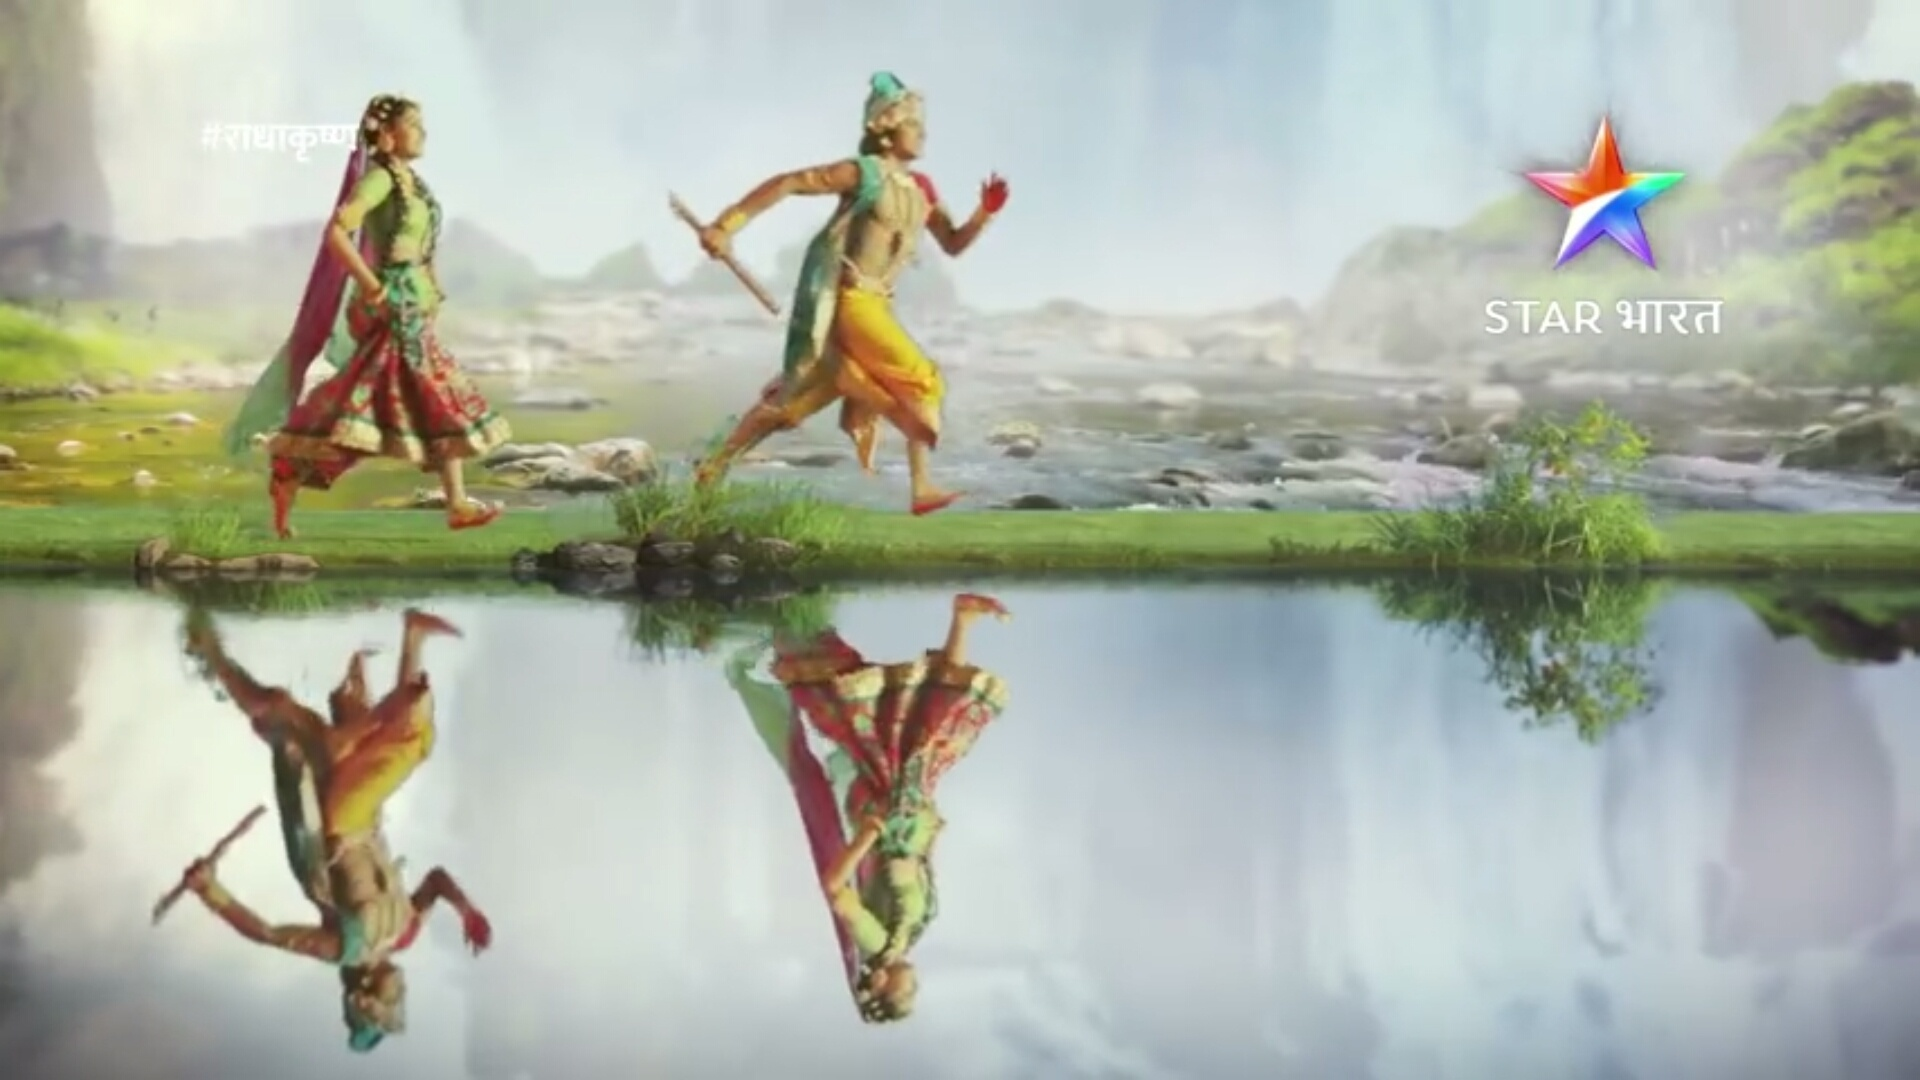 What's your review of RadhaKrishn (new Indian TV show)? - Quora